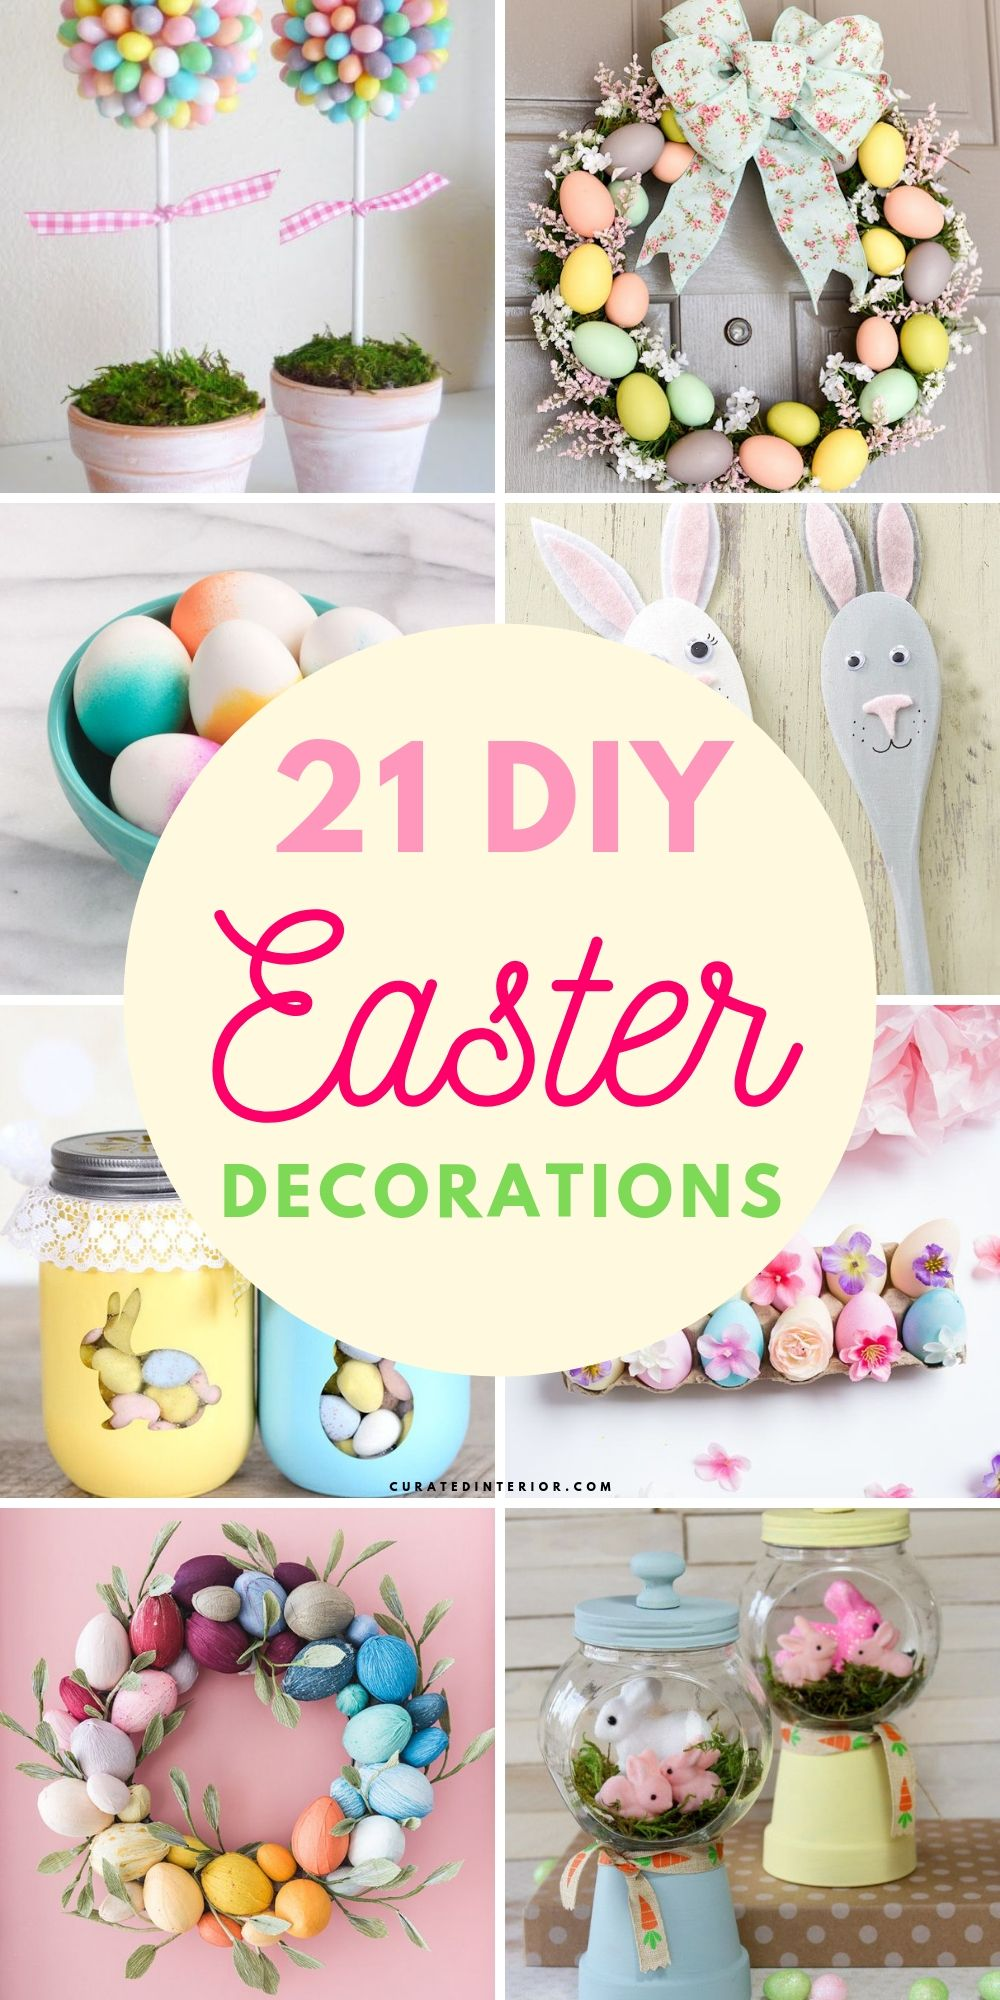 21 DIY Easter Decorations and Ideas